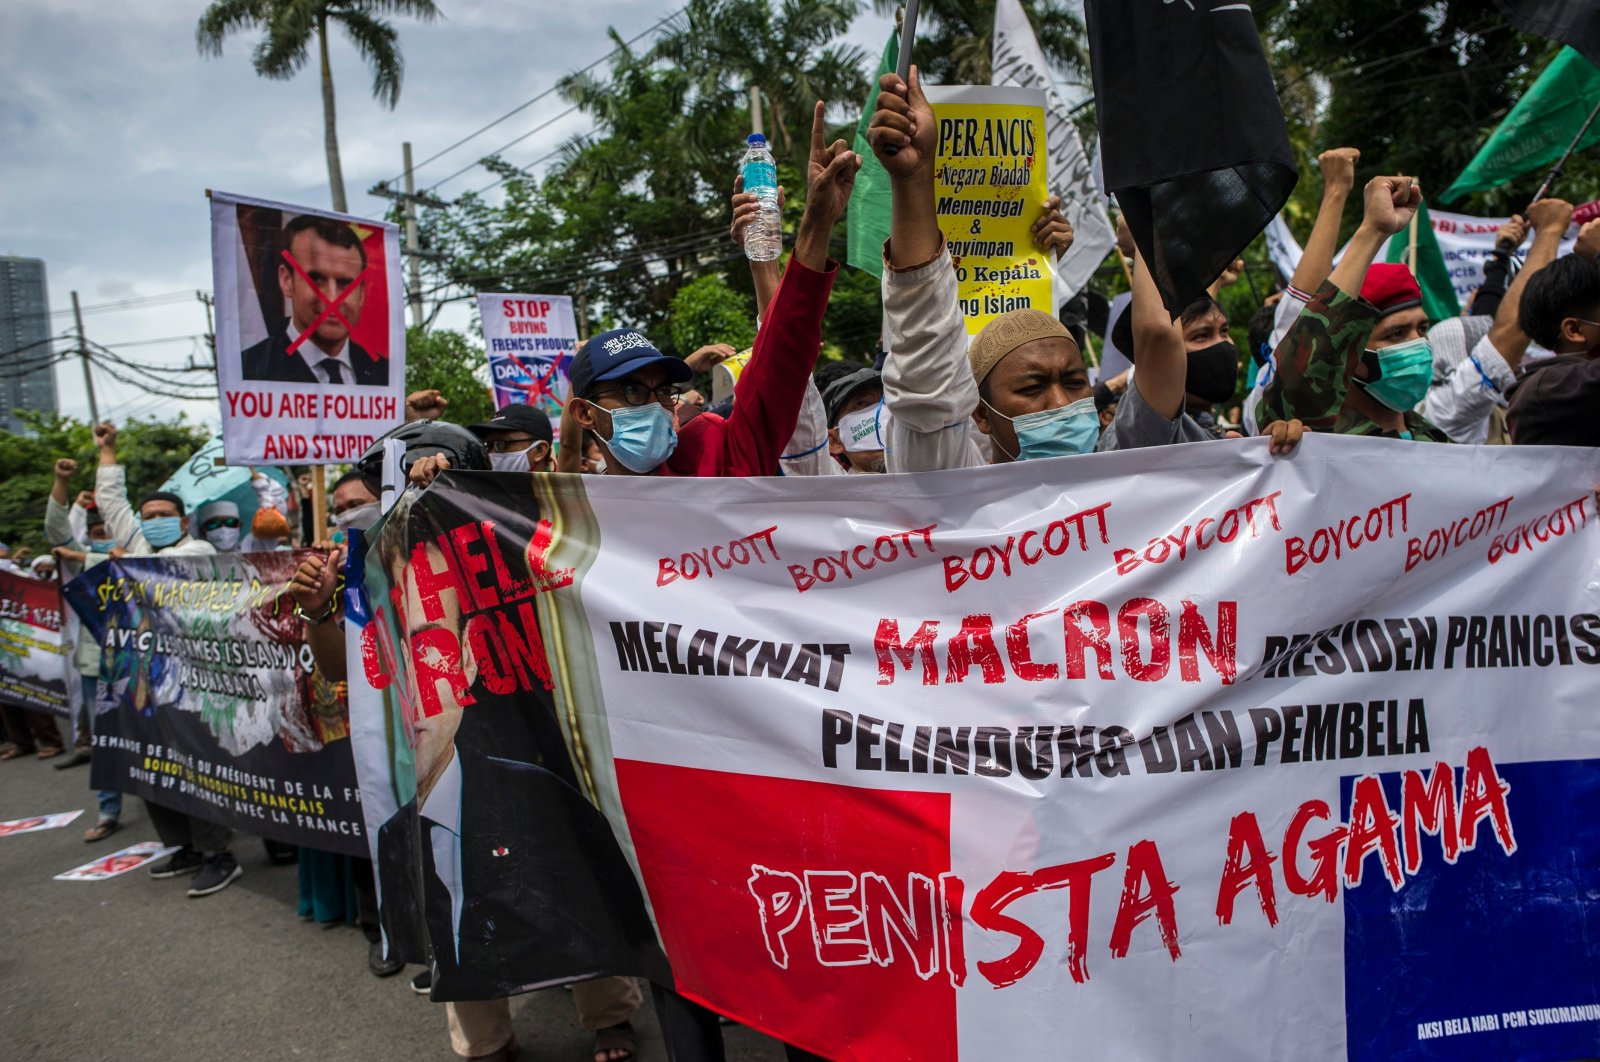 Muslim protesters attend a demonstration against French President Emmanuel Macron in Surabaya, Indonesia, Nov. 2, 2020. (AFP Photo)